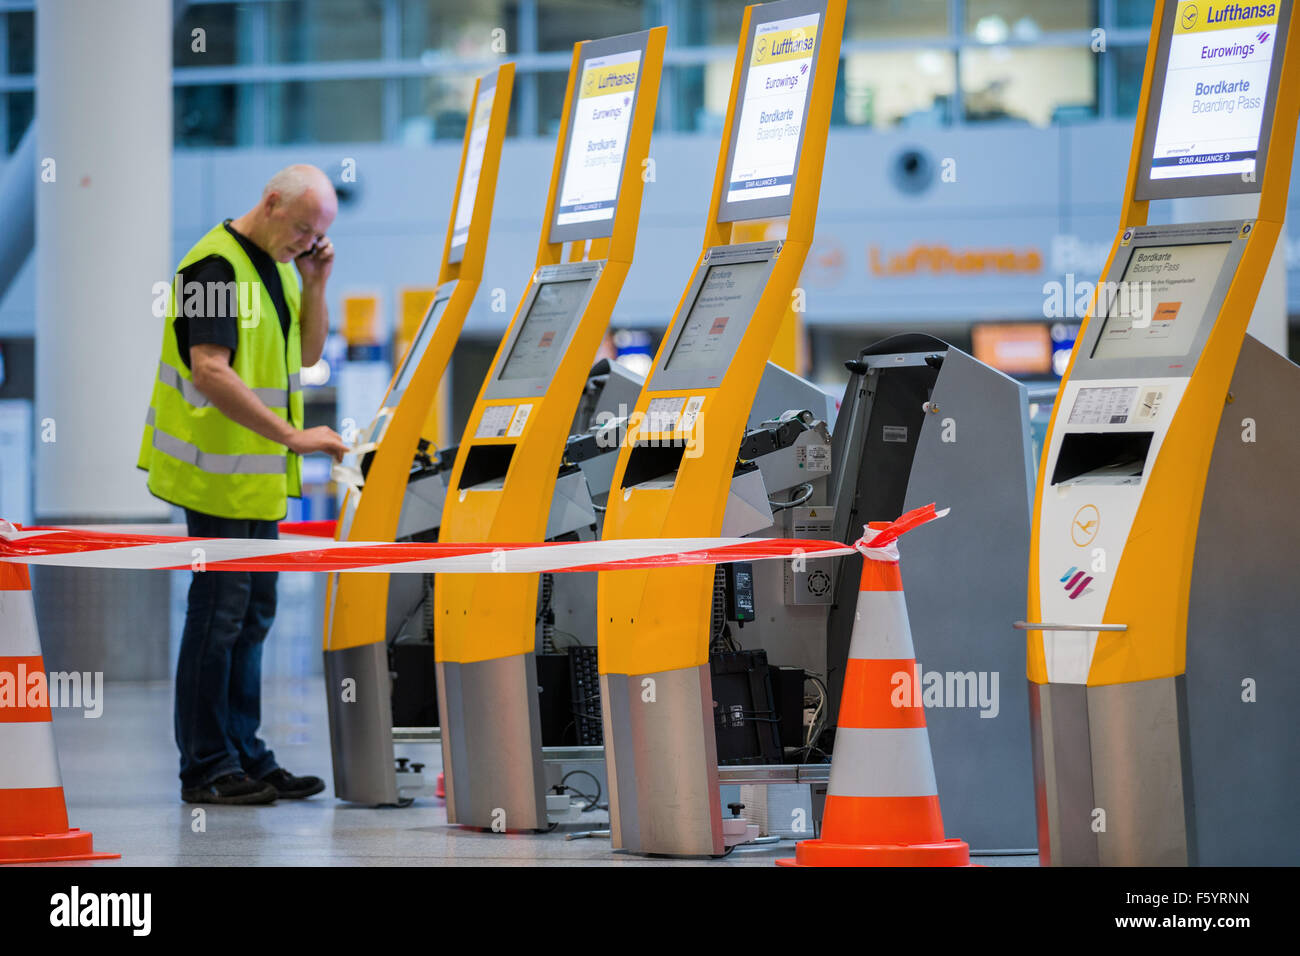 Duesseldorf, Germany. 10th Nov, 2015. Check-in machines are being serviced by maintenance staff at the airport in Stock Photo